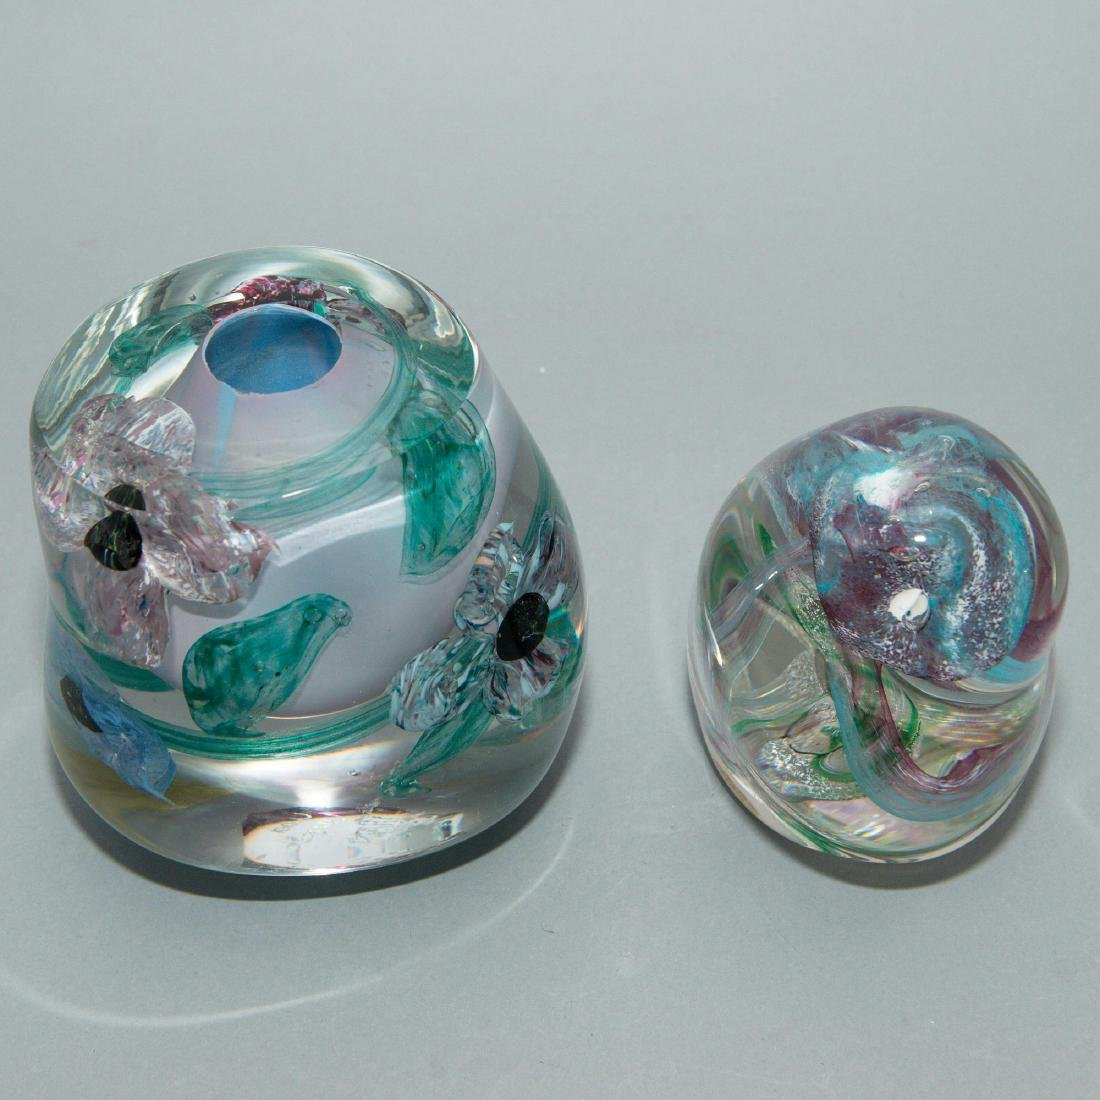 PAIR OF LISA LEYDON ART GLASS VASE AND SCULPTURE - 5